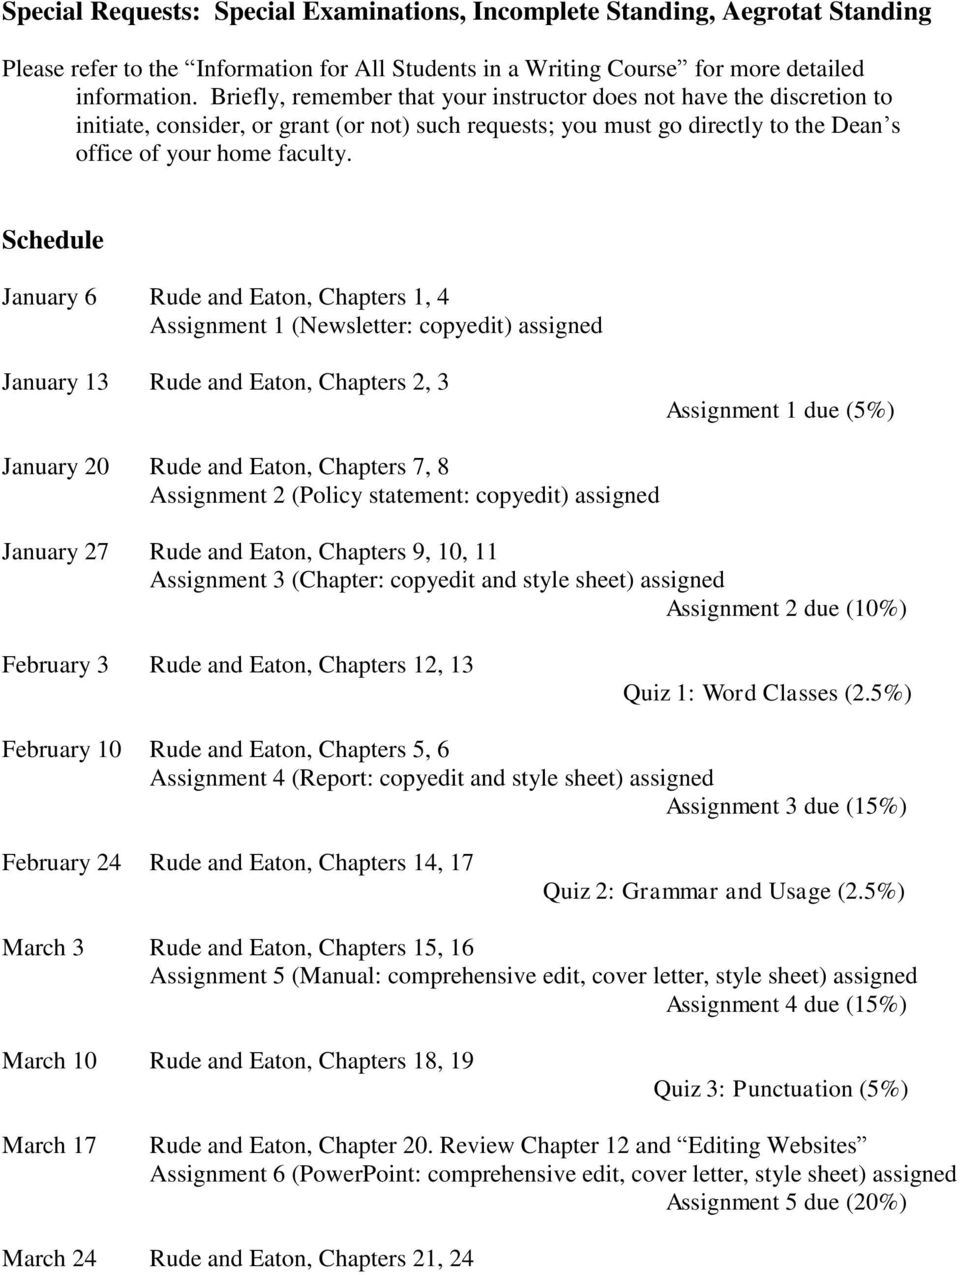 Schedule January 6 Rude and Eaton, Chapters 1, 4 Assignment 1 (Newsletter: copyedit) assigned January 13 Rude and Eaton, Chapters 2, 3 Assignment 1 due (5%) January 20 Rude and Eaton, Chapters 7, 8